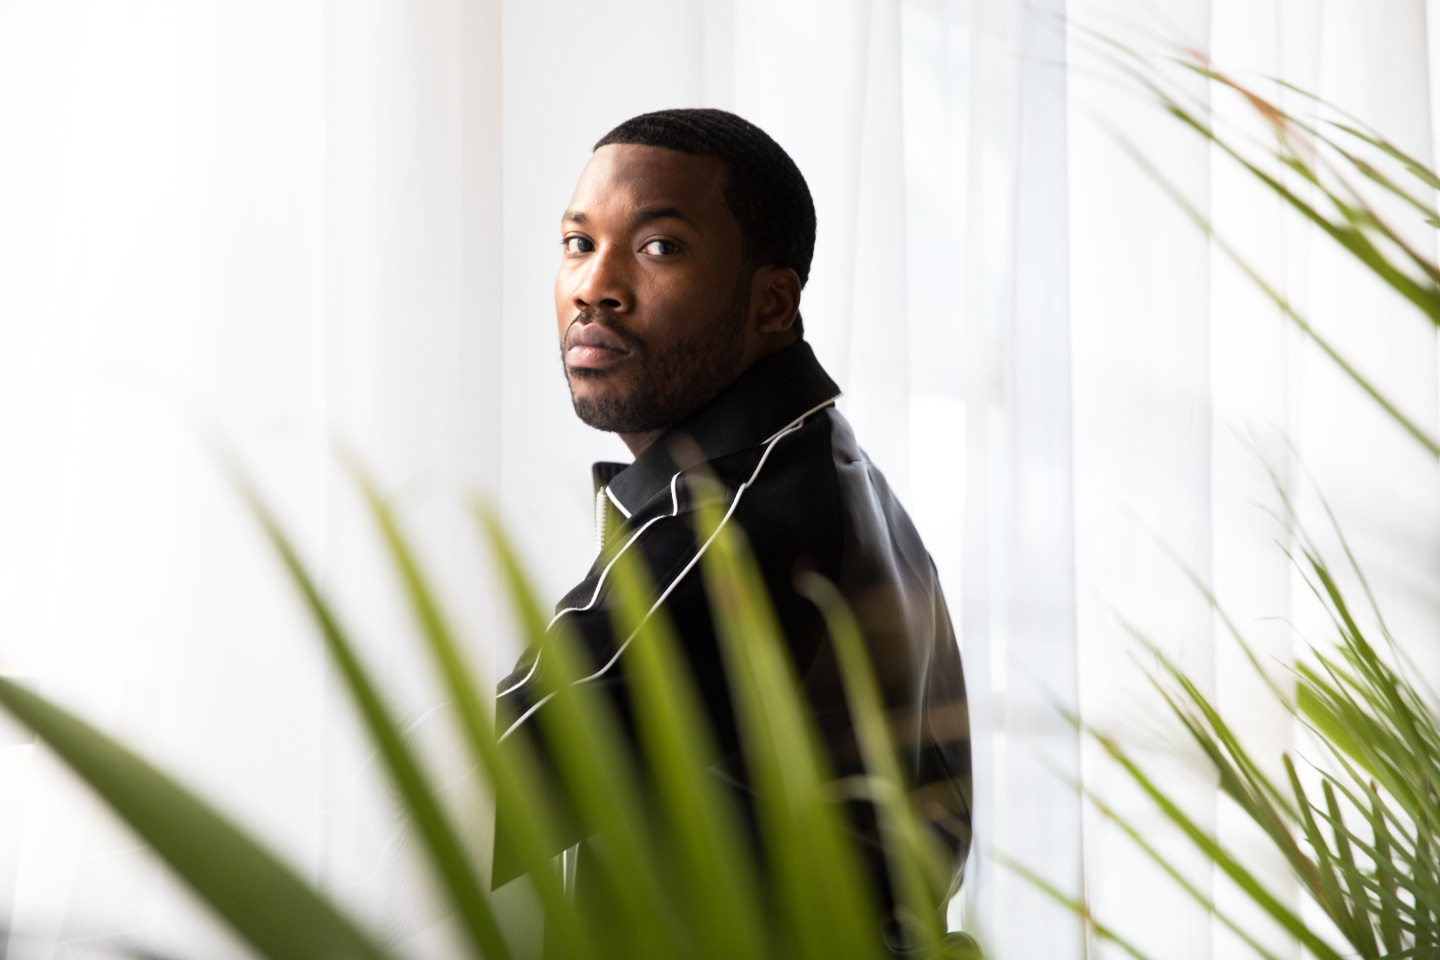 Meek Mill has already served his time. So why is he still being punished?